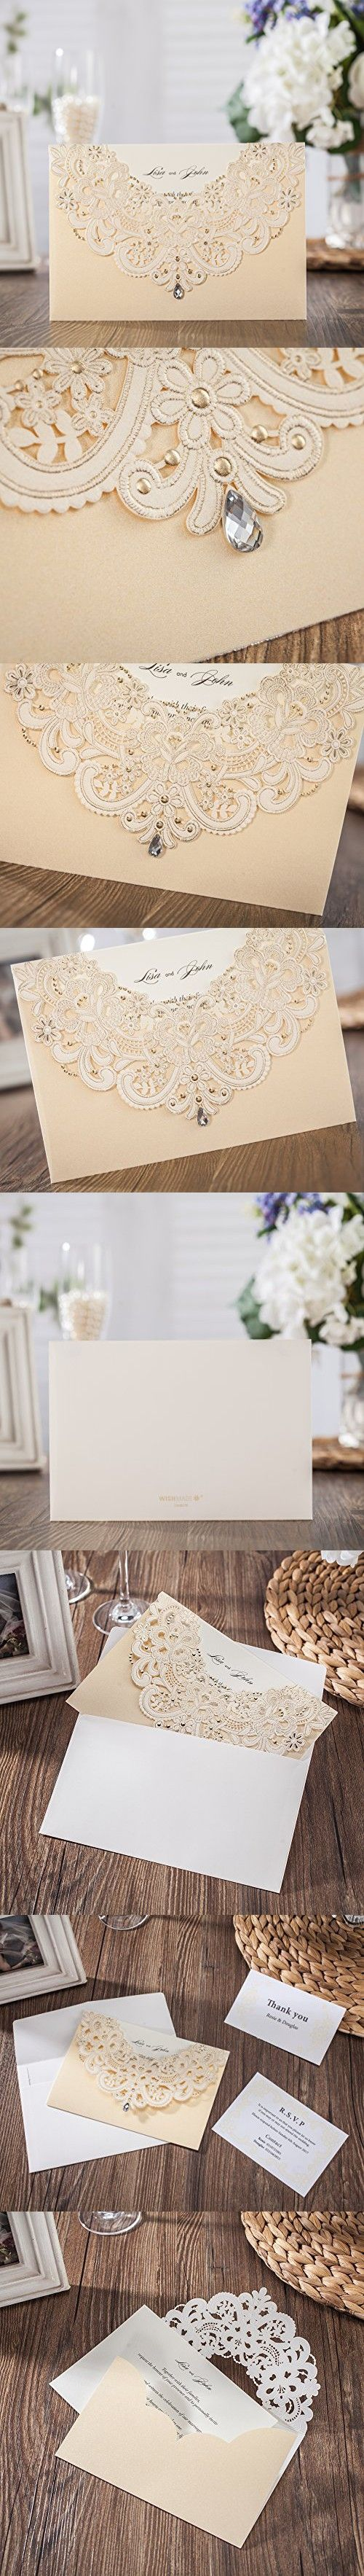 white and gold wedding invitations%0A Wishmade  x Gold Laser Cut Flora  u     Lace Wedding Invitations Kit With  Rhinestone Matched With RSVP